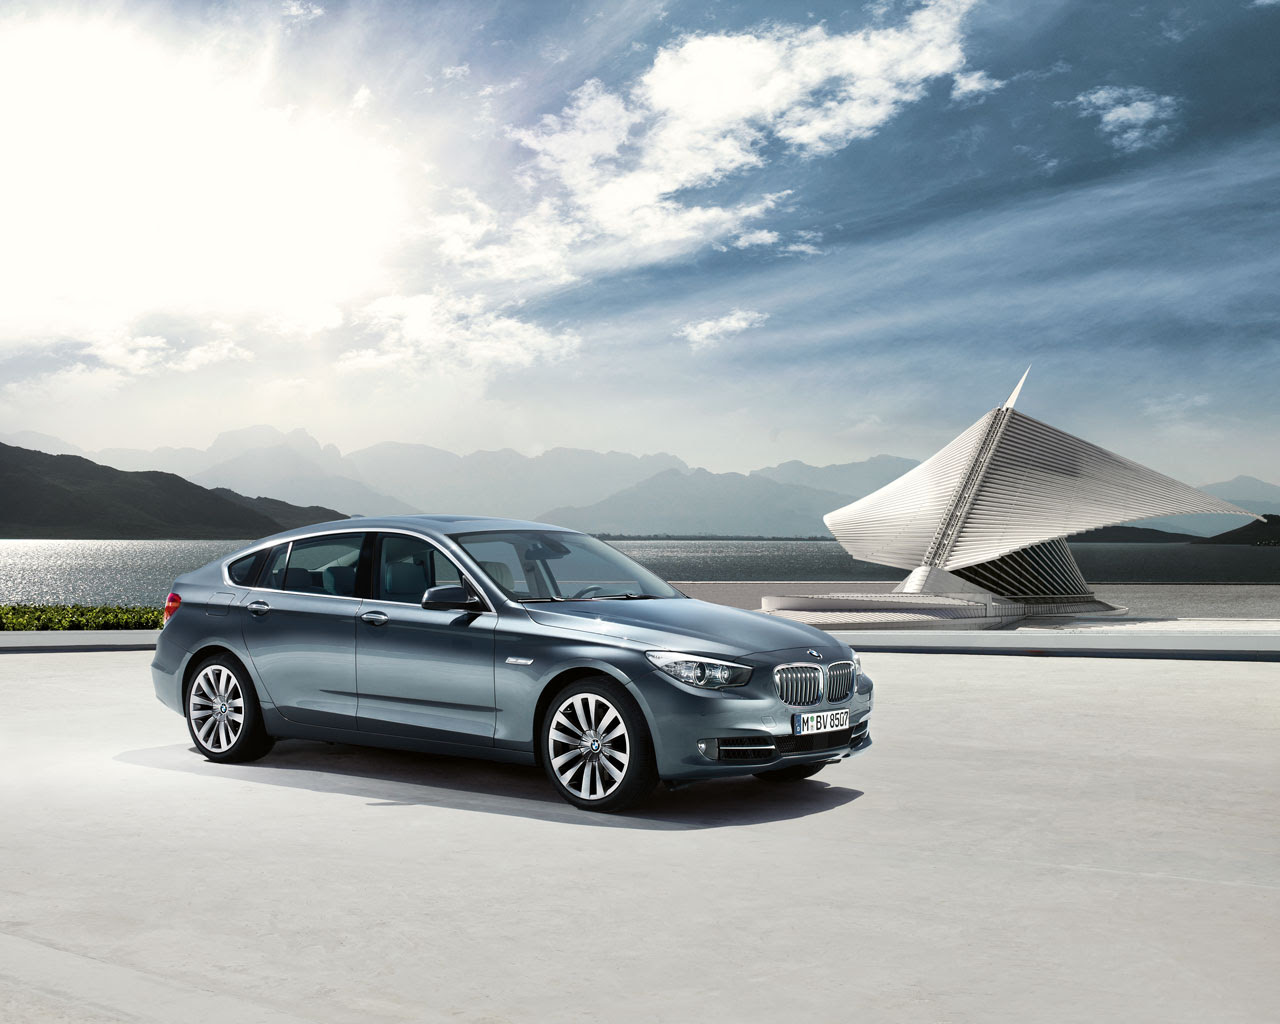 Based on the platform of the new BMW 7 Series, the 5 Series GT was